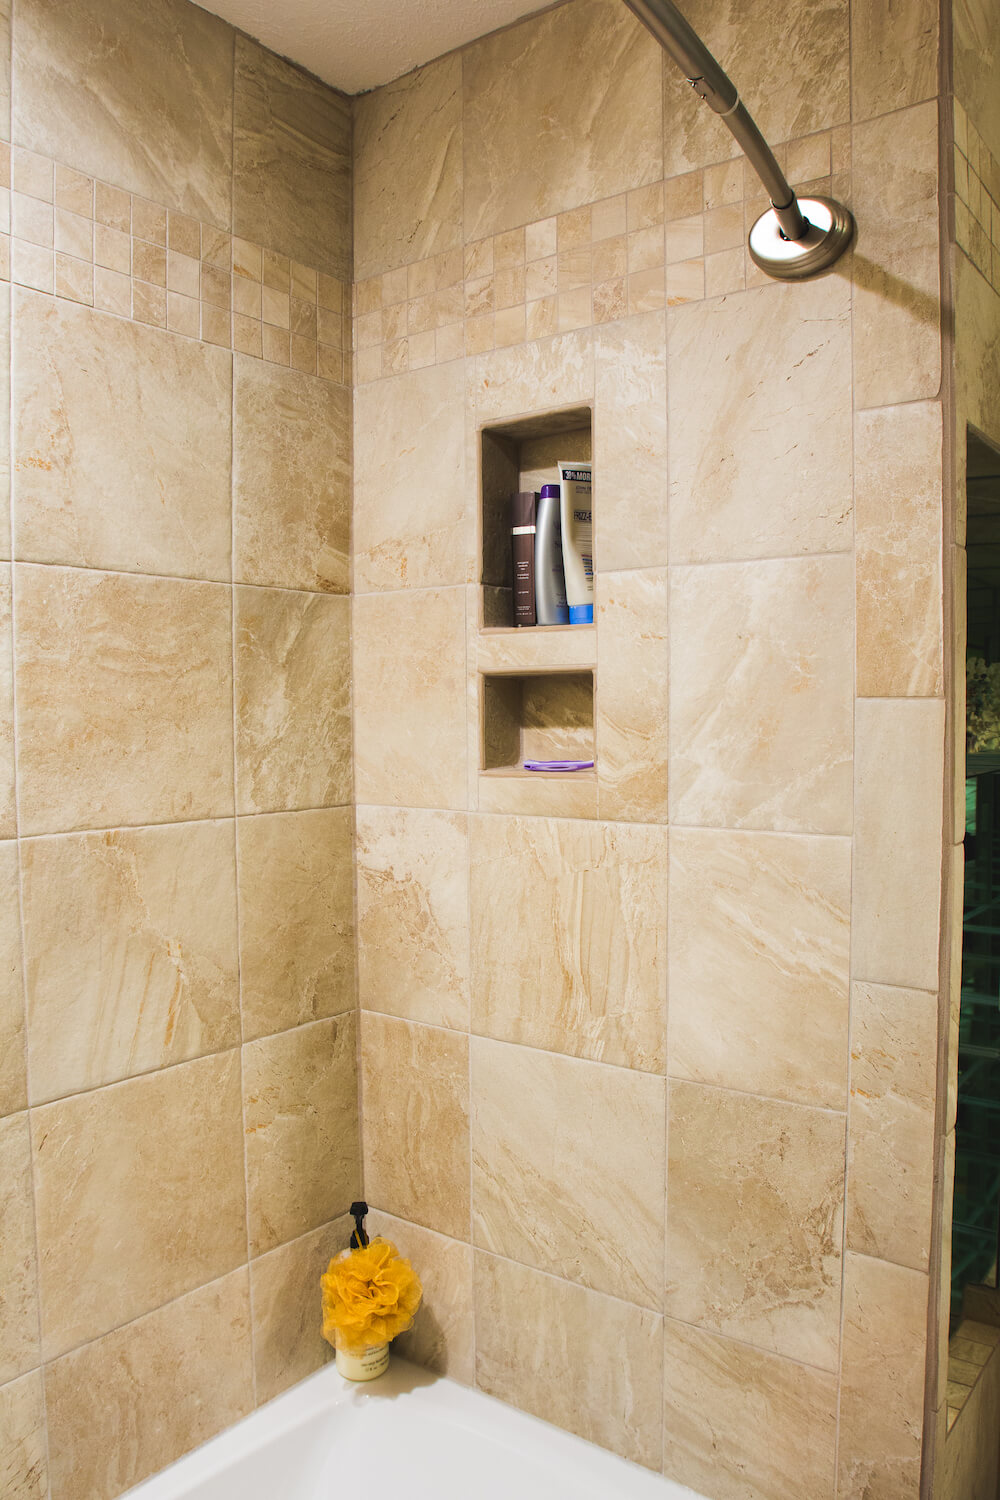 When to regrout shower